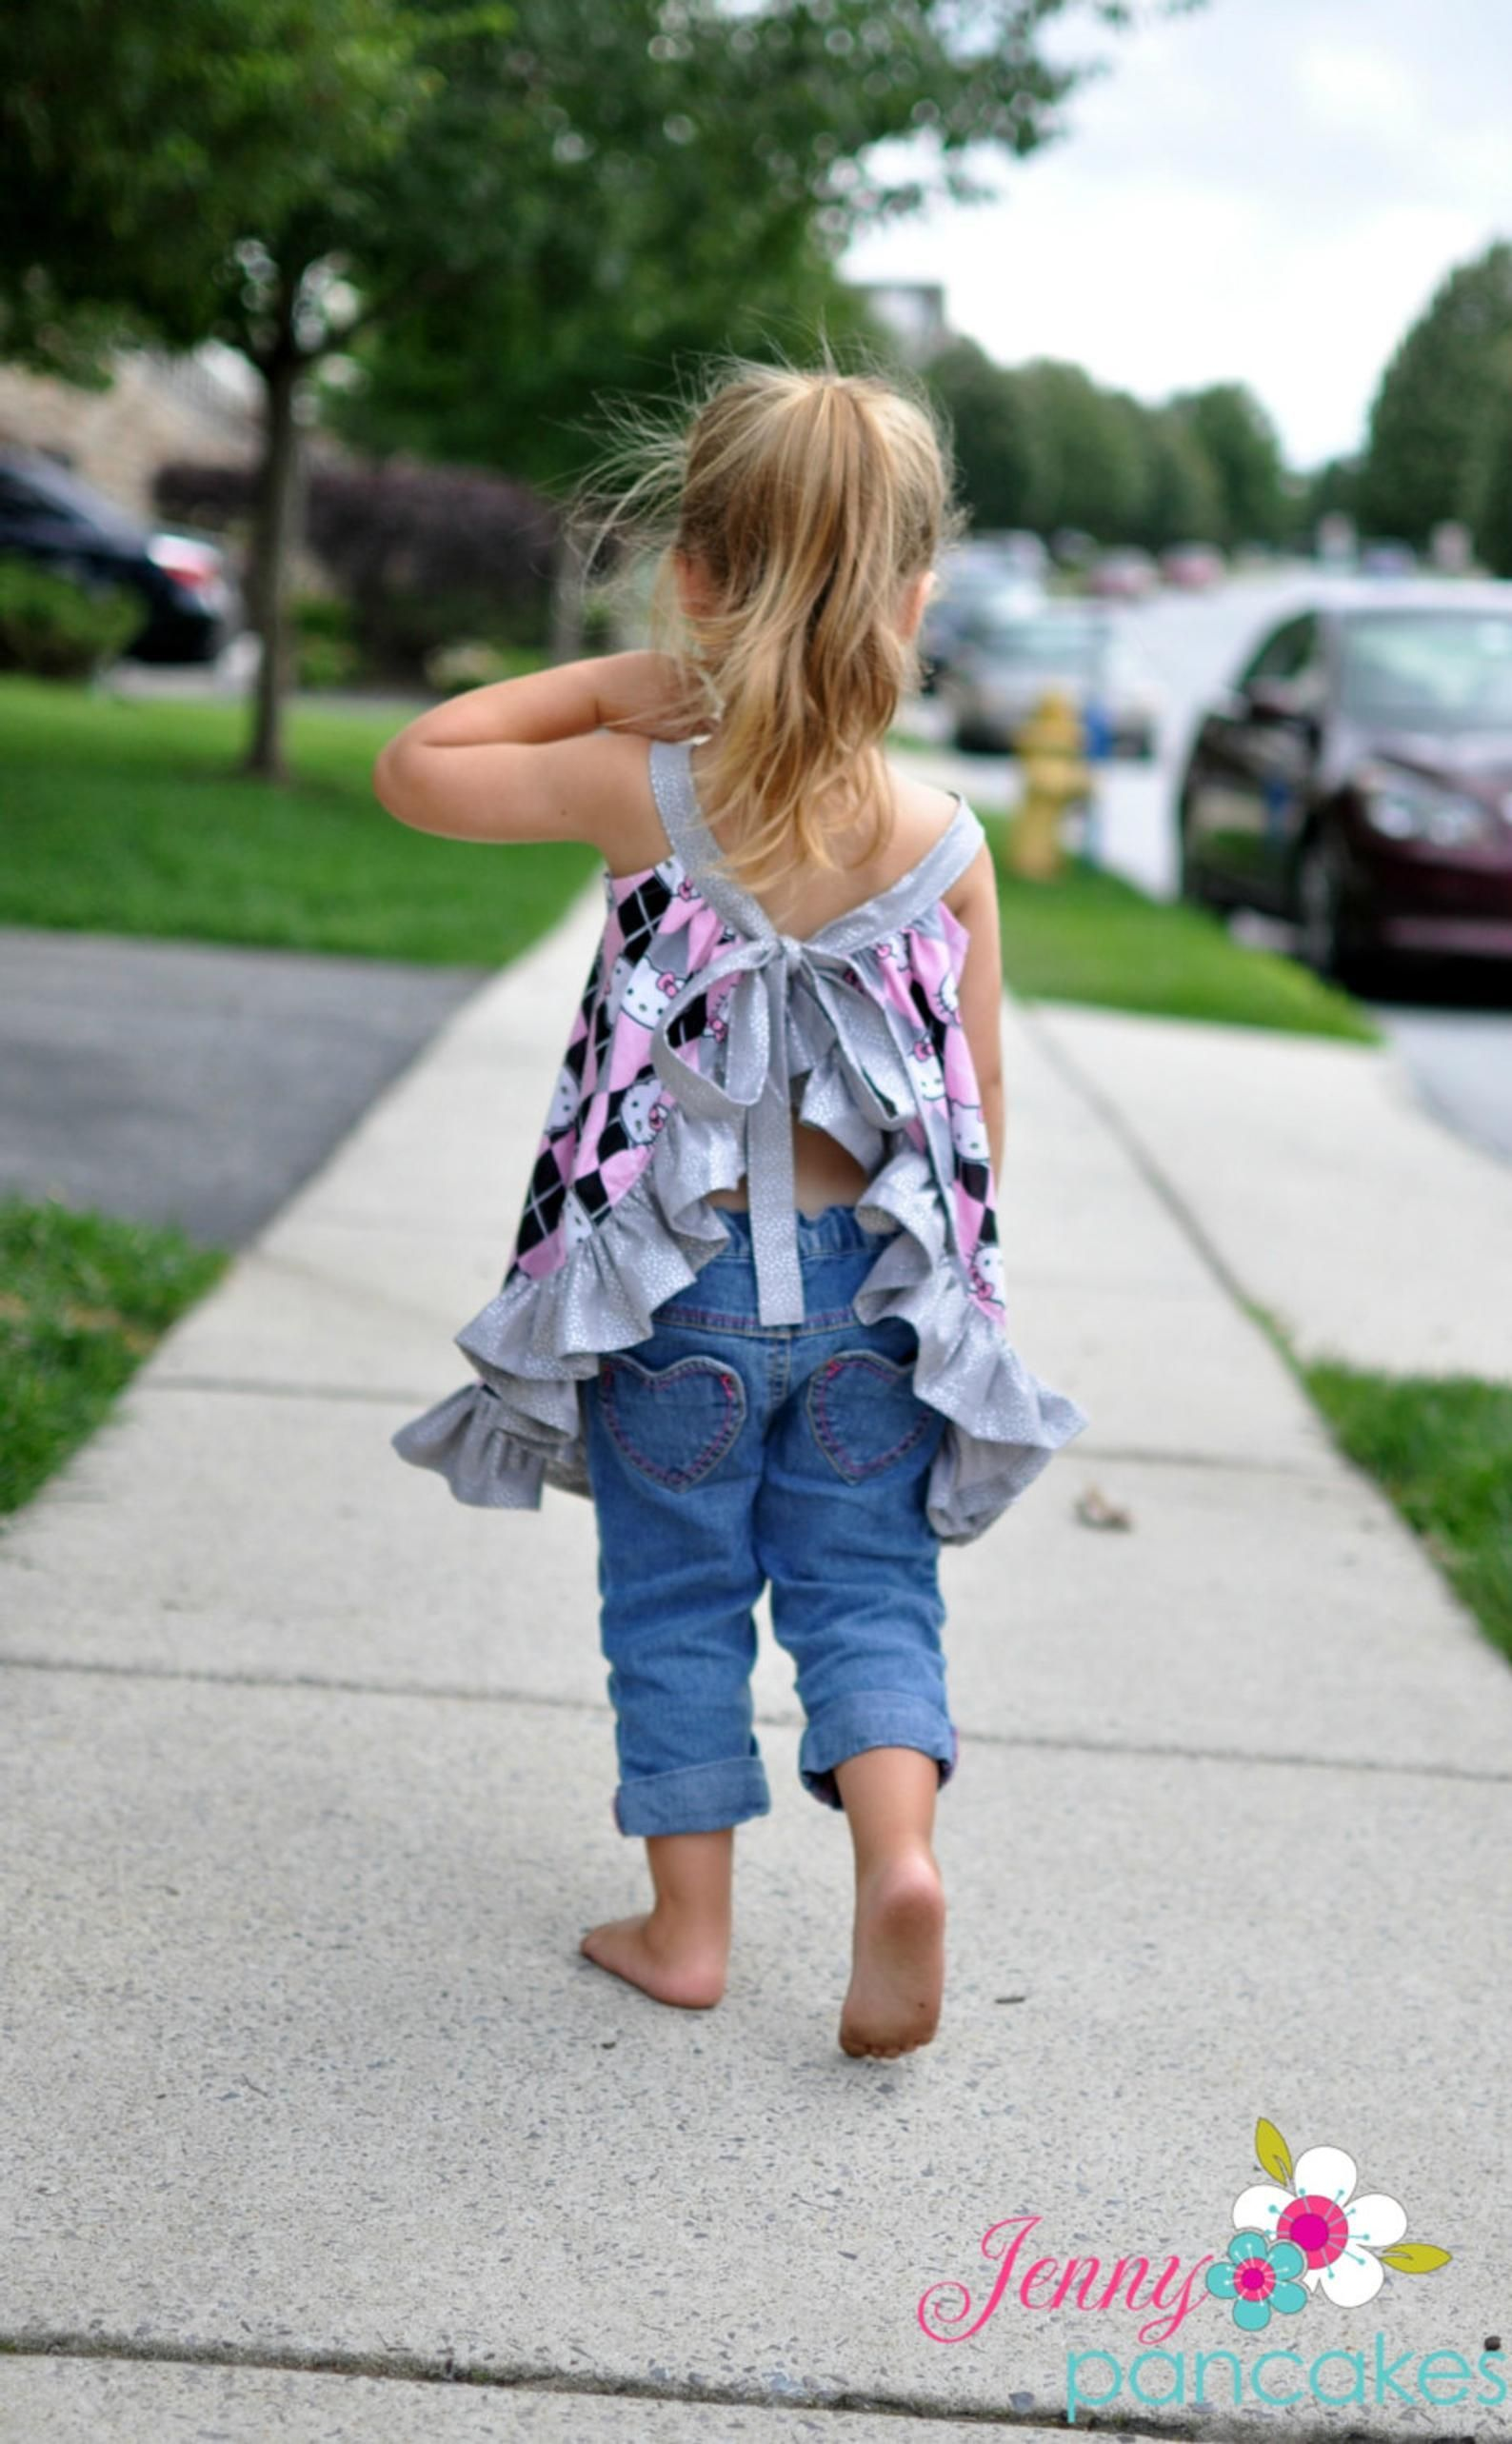 Best Picture For  Little Girl Fashion dresses  For Your Taste  You are looking for something, and it is going to tell you exactly what you are looking for, and you didn't find that picture. Here you will find the most beautiful picture that will fascinate you when called  Little Girl F... #Baby #Baby girl fashion #Girls #Girls fashion kids #Kid styles #Kid swag #Little diva #Little girl outfits #newborn #pattern #pinafore #sewing #toddler #Toddler girl clothing #Toddler girls fashion #years